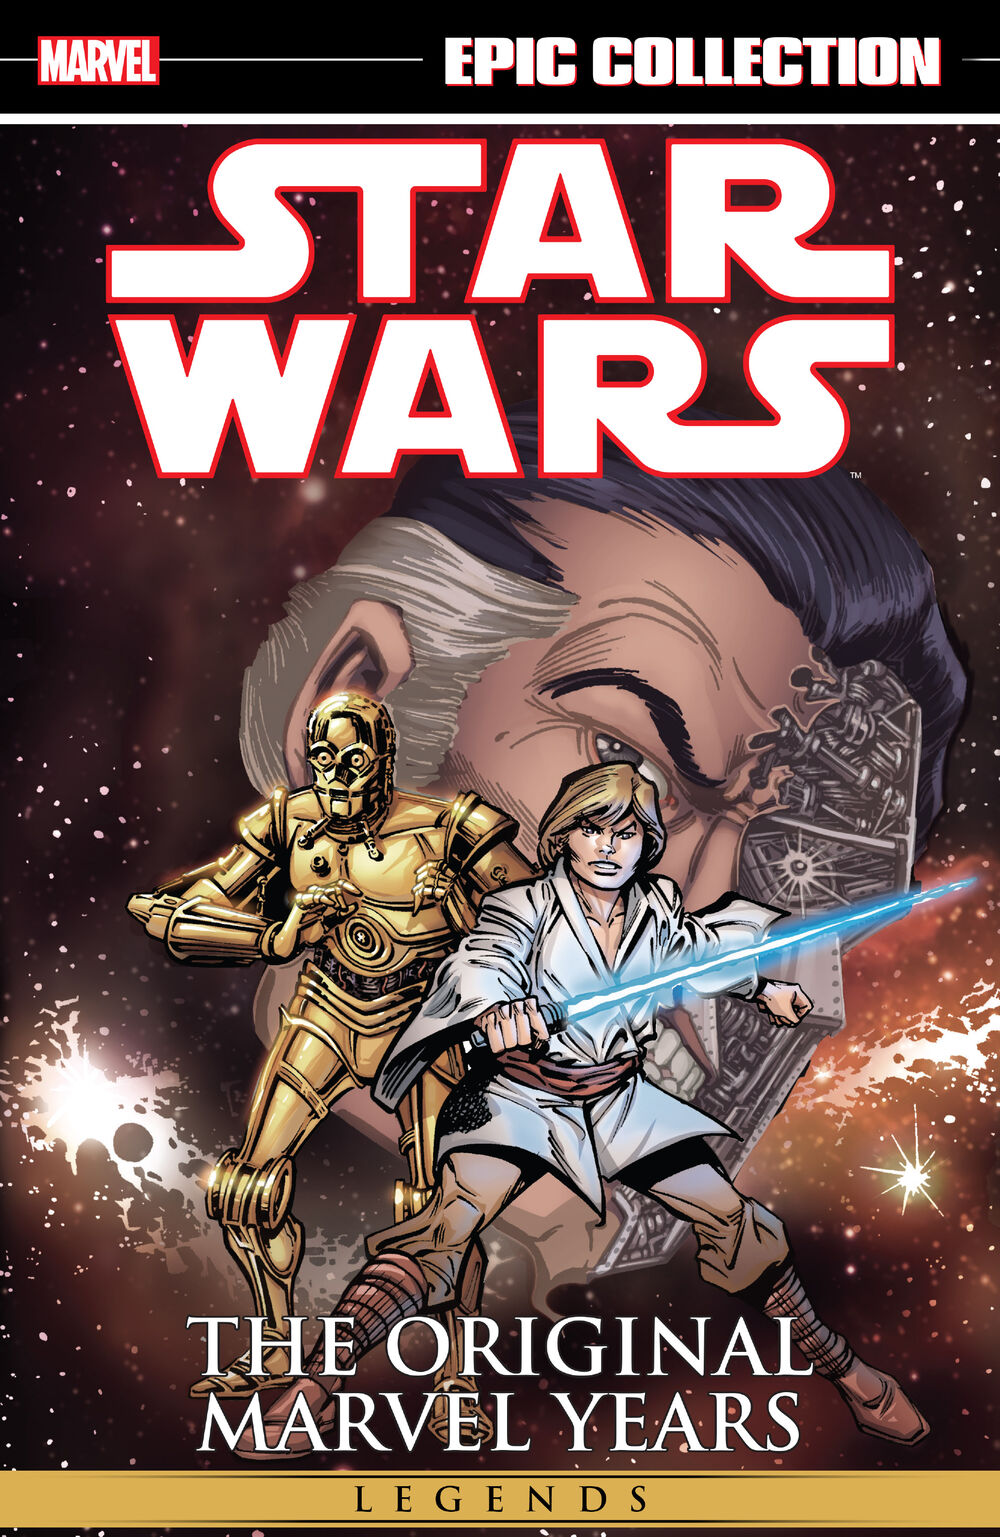 Star Wars Legends Epic Collection: The Original Marvel Years Volume 2